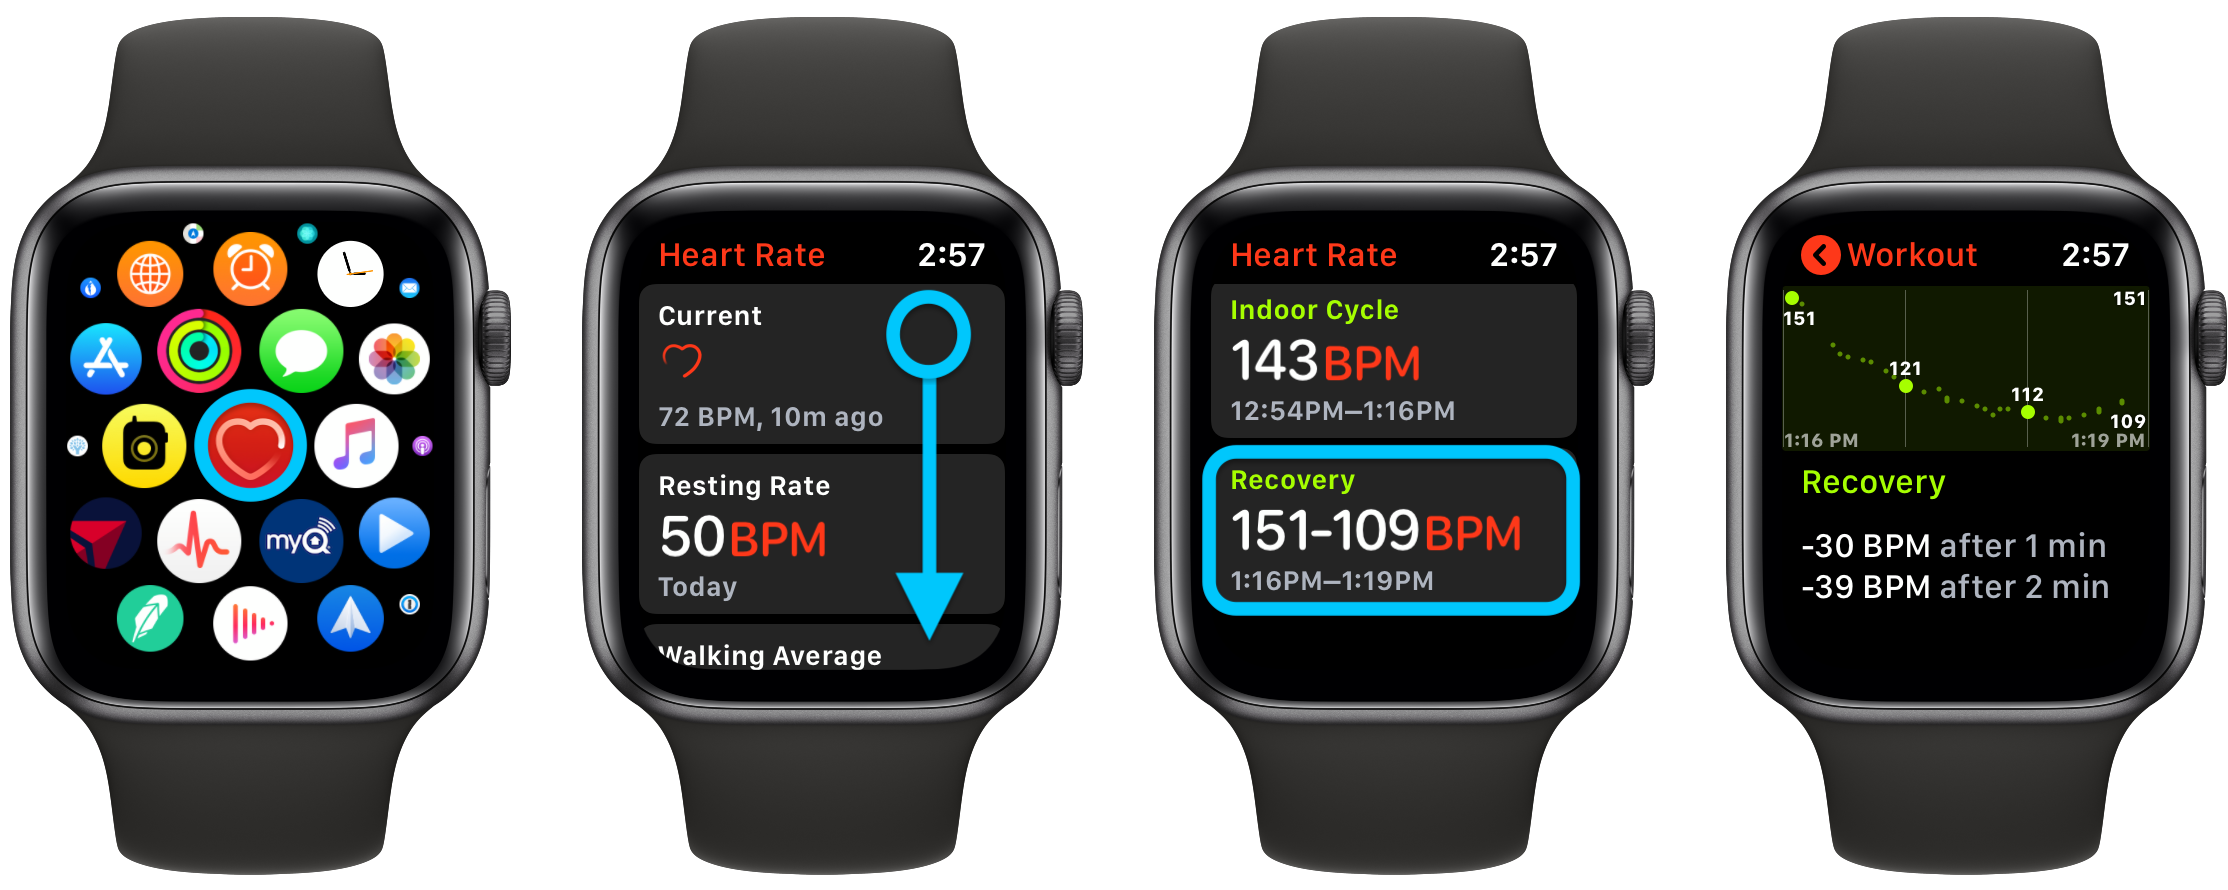 Apple Watch How to see heart rate recovery and what is it